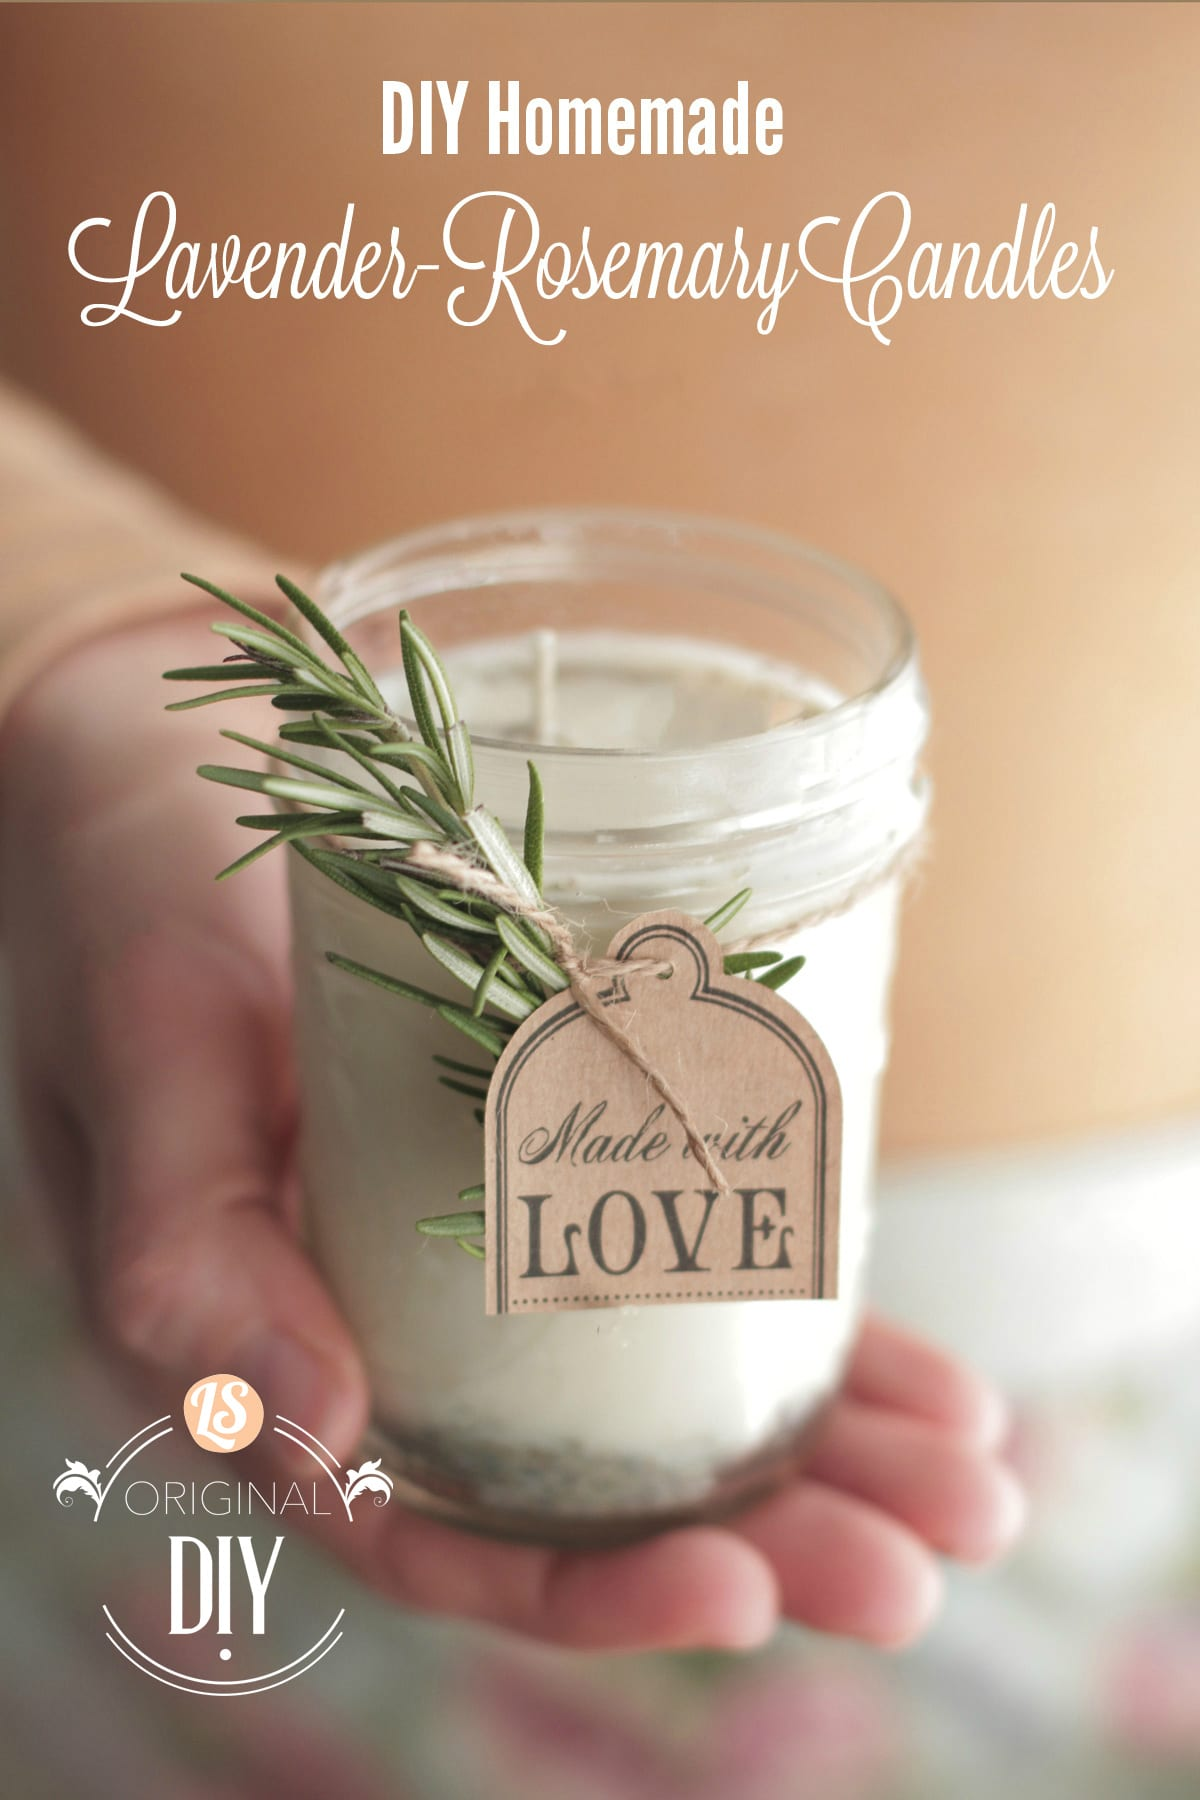 How To Make Homemade DIY Candles. A Gift That Family And Friends Will Love.